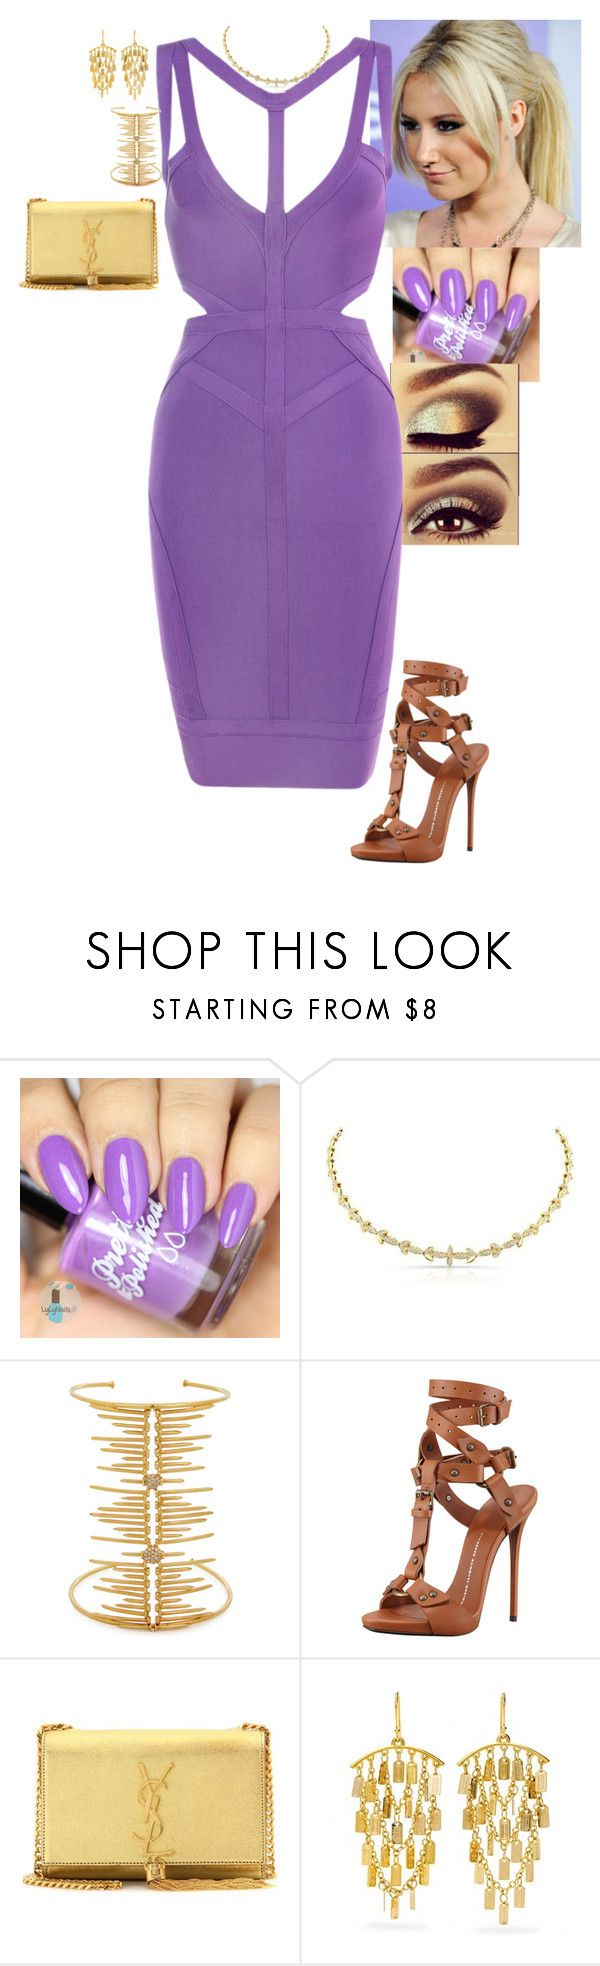 """Weak Ankles - Cocktails by Cody"" by stinze on Polyvore featuring Joanna Laura Constantine, Giuseppe Zanotti, Yves Saint Laurent and Coach"